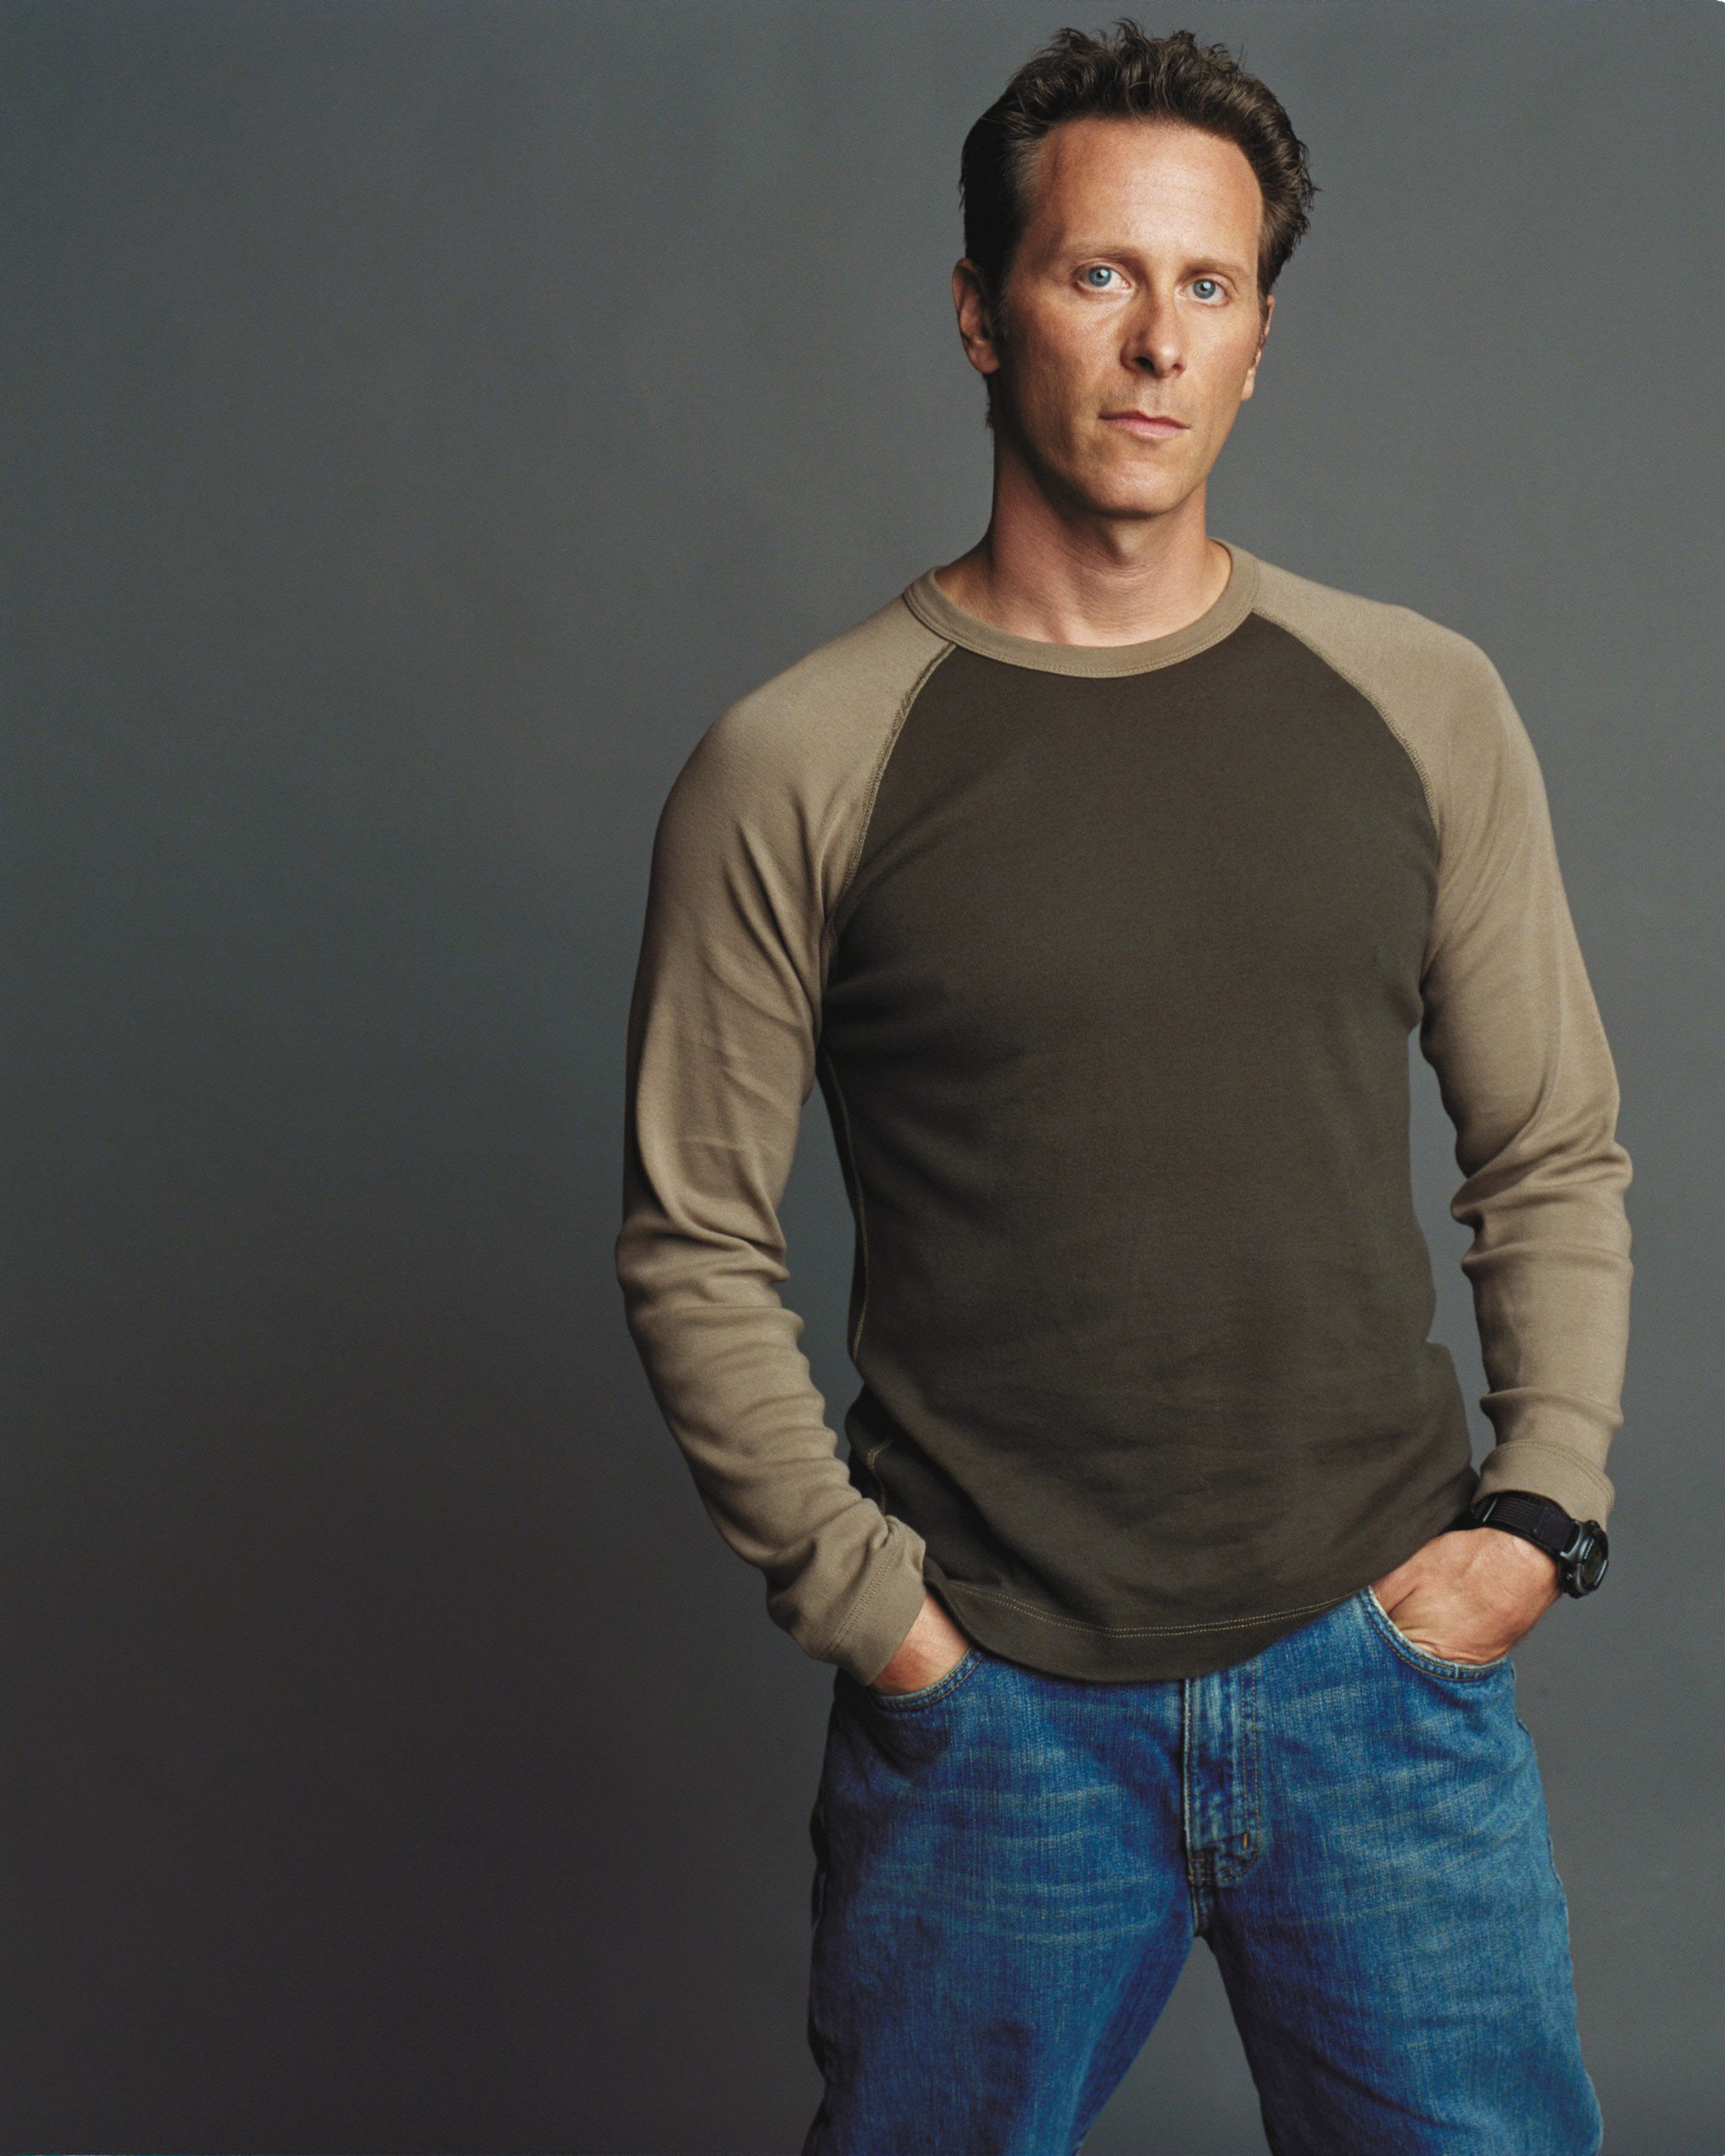 from Cain actor gay steven weber